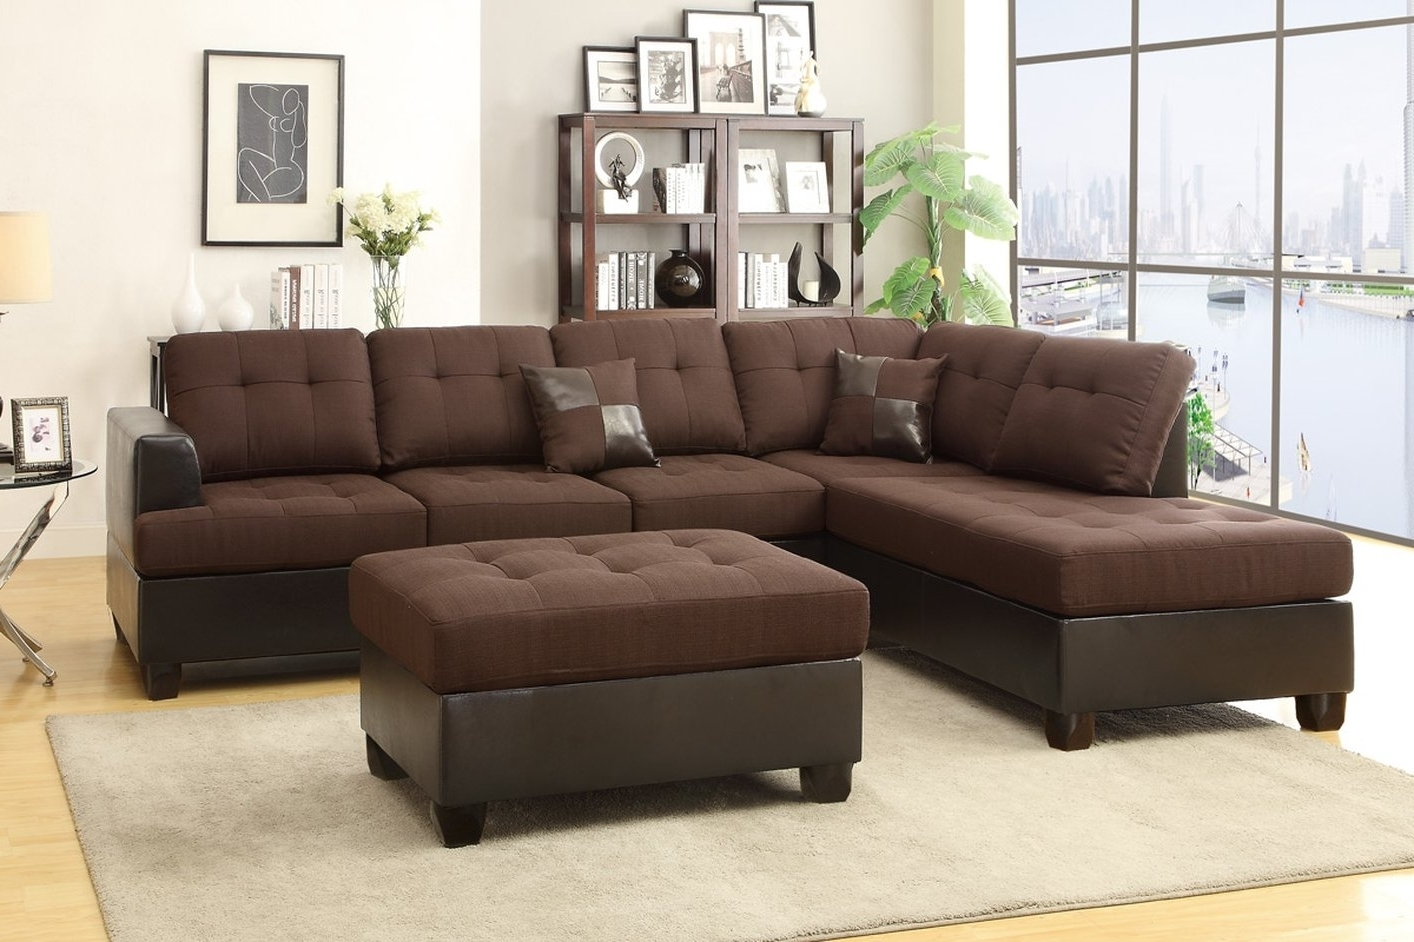 Most Recently Released Incredible Chocolate Polyfiber Leather Room To Go Sofas Polyfiber Inside Rooms To Go Sectional Sofas (View 5 of 15)